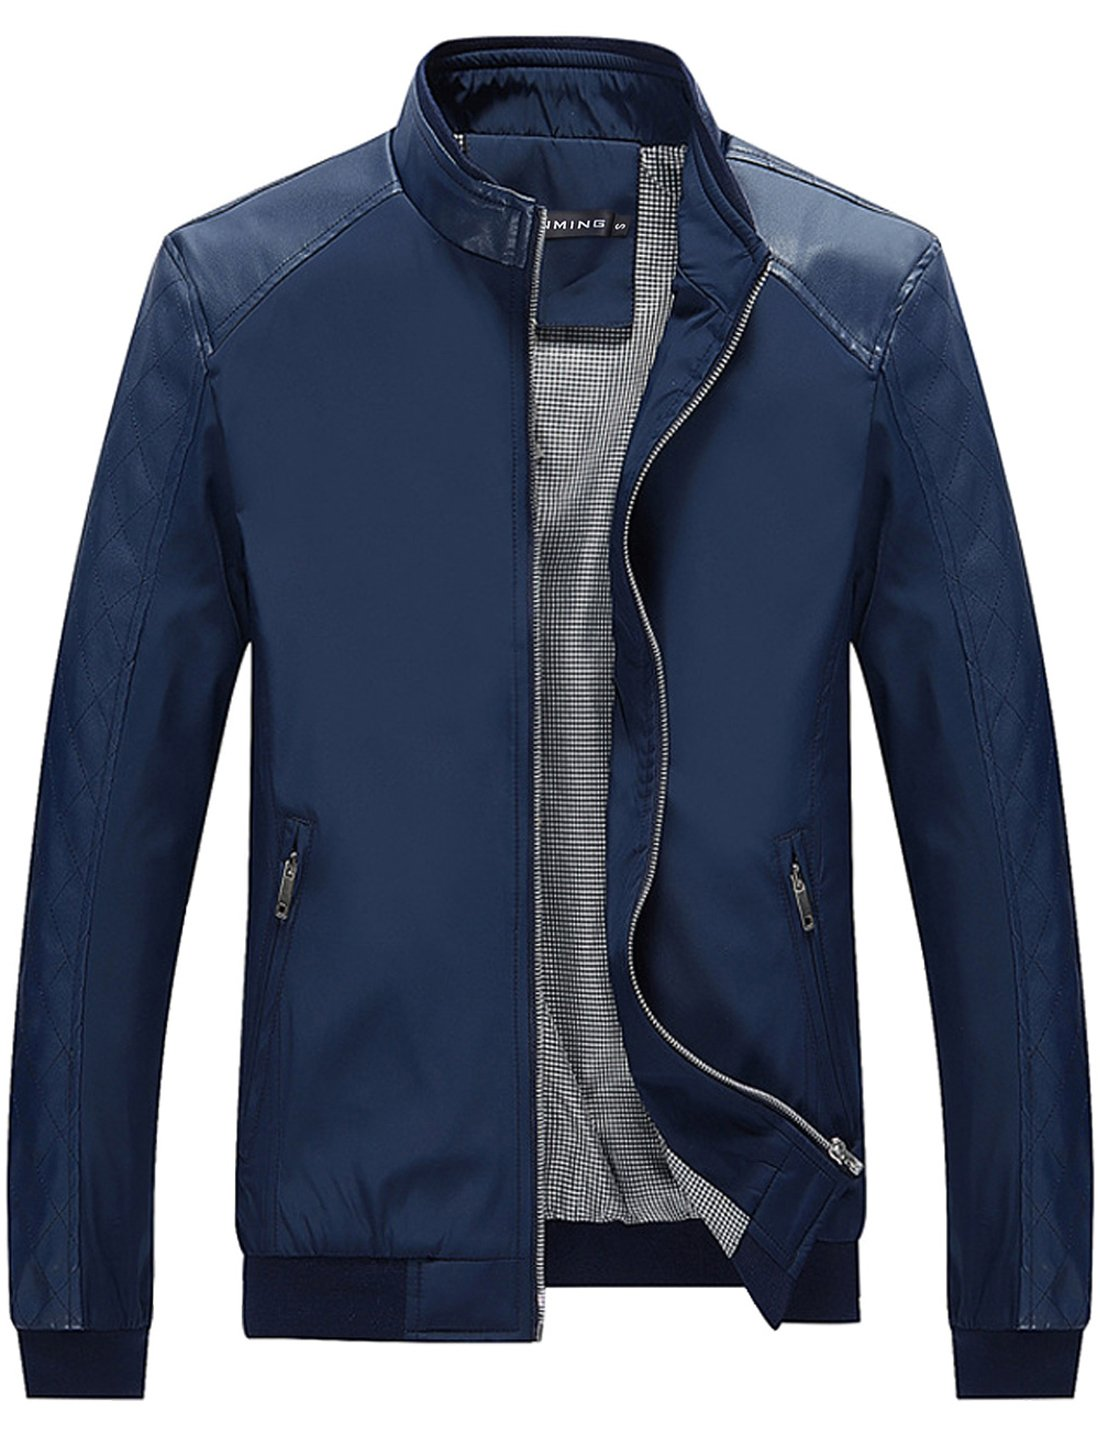 Tanming Men's Color Block Slim Casual Jacket (XX-Large, Blue)